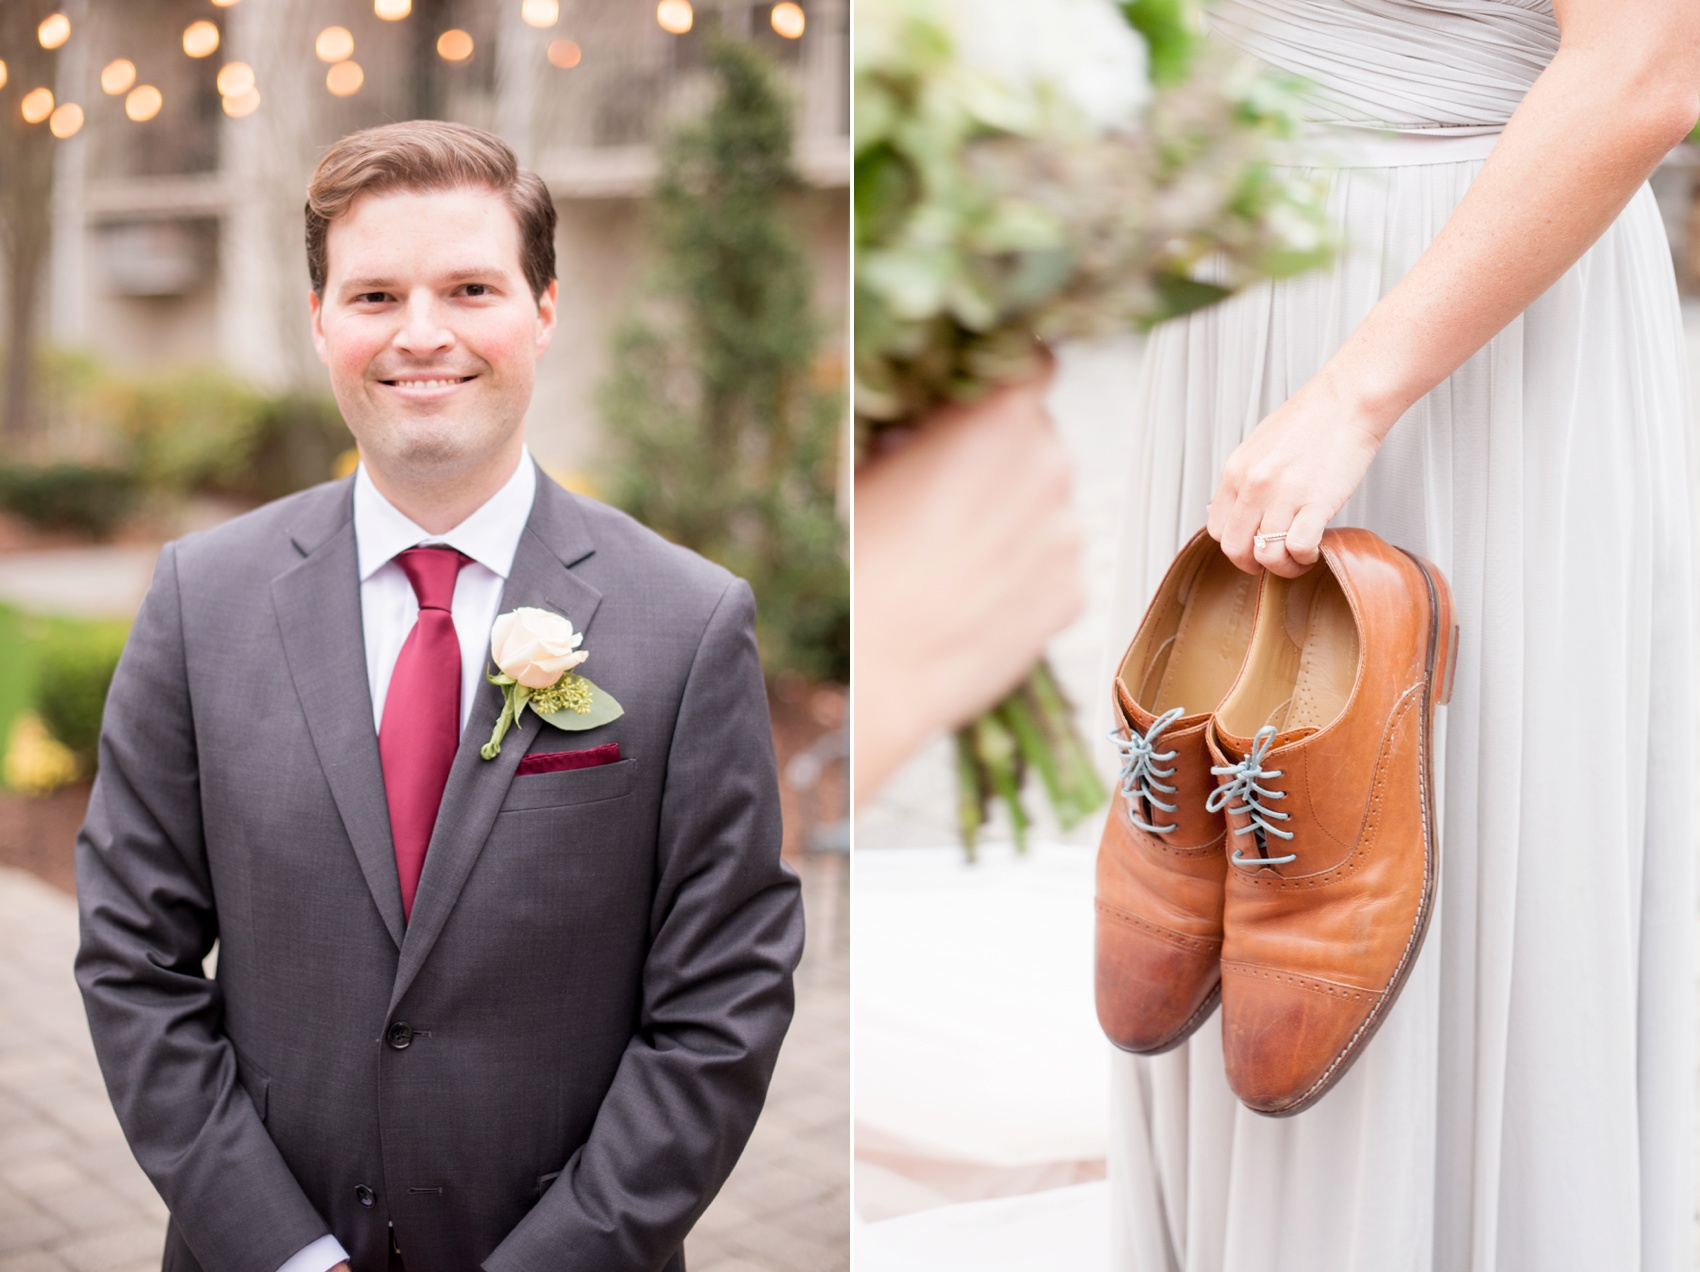 Olde Mill Inn New Jersey wedding by Mikkel Paige Photography, NYC and Raleigh wedding photographer. Groomsmen with laces to match the bridesmaids.